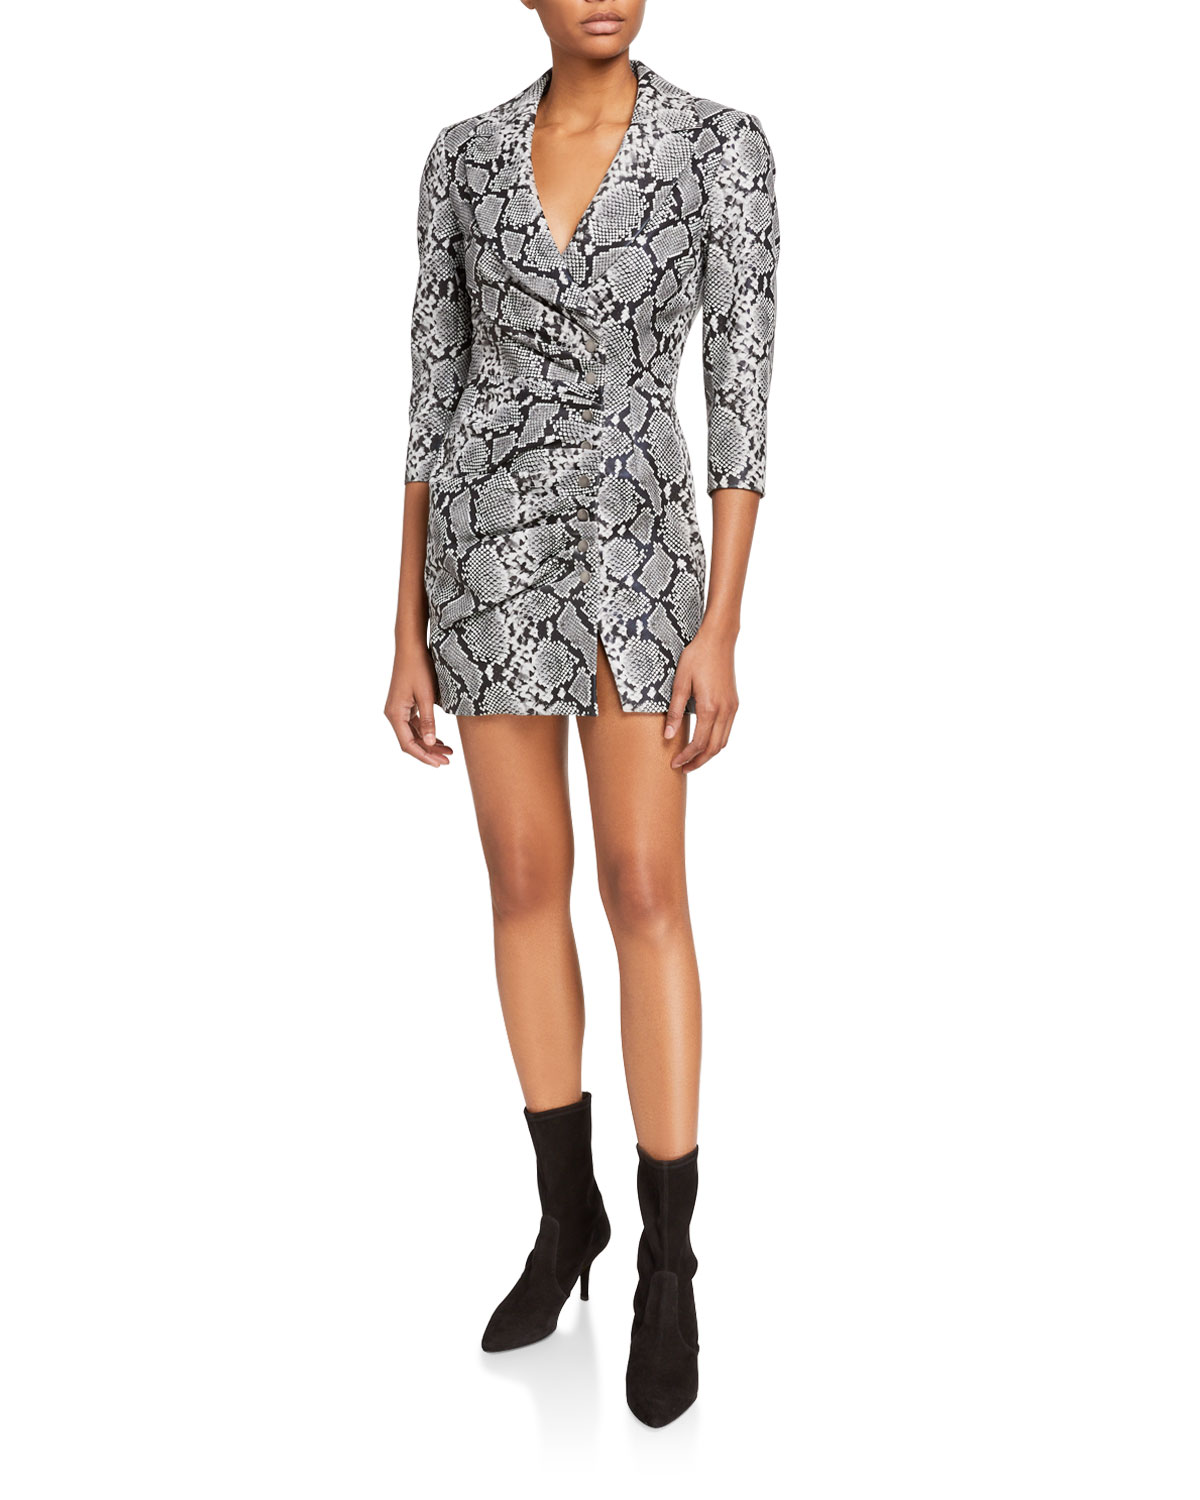 Retrofete Willa Collared Leather Snap-Front Dress in Silver Snakeskin